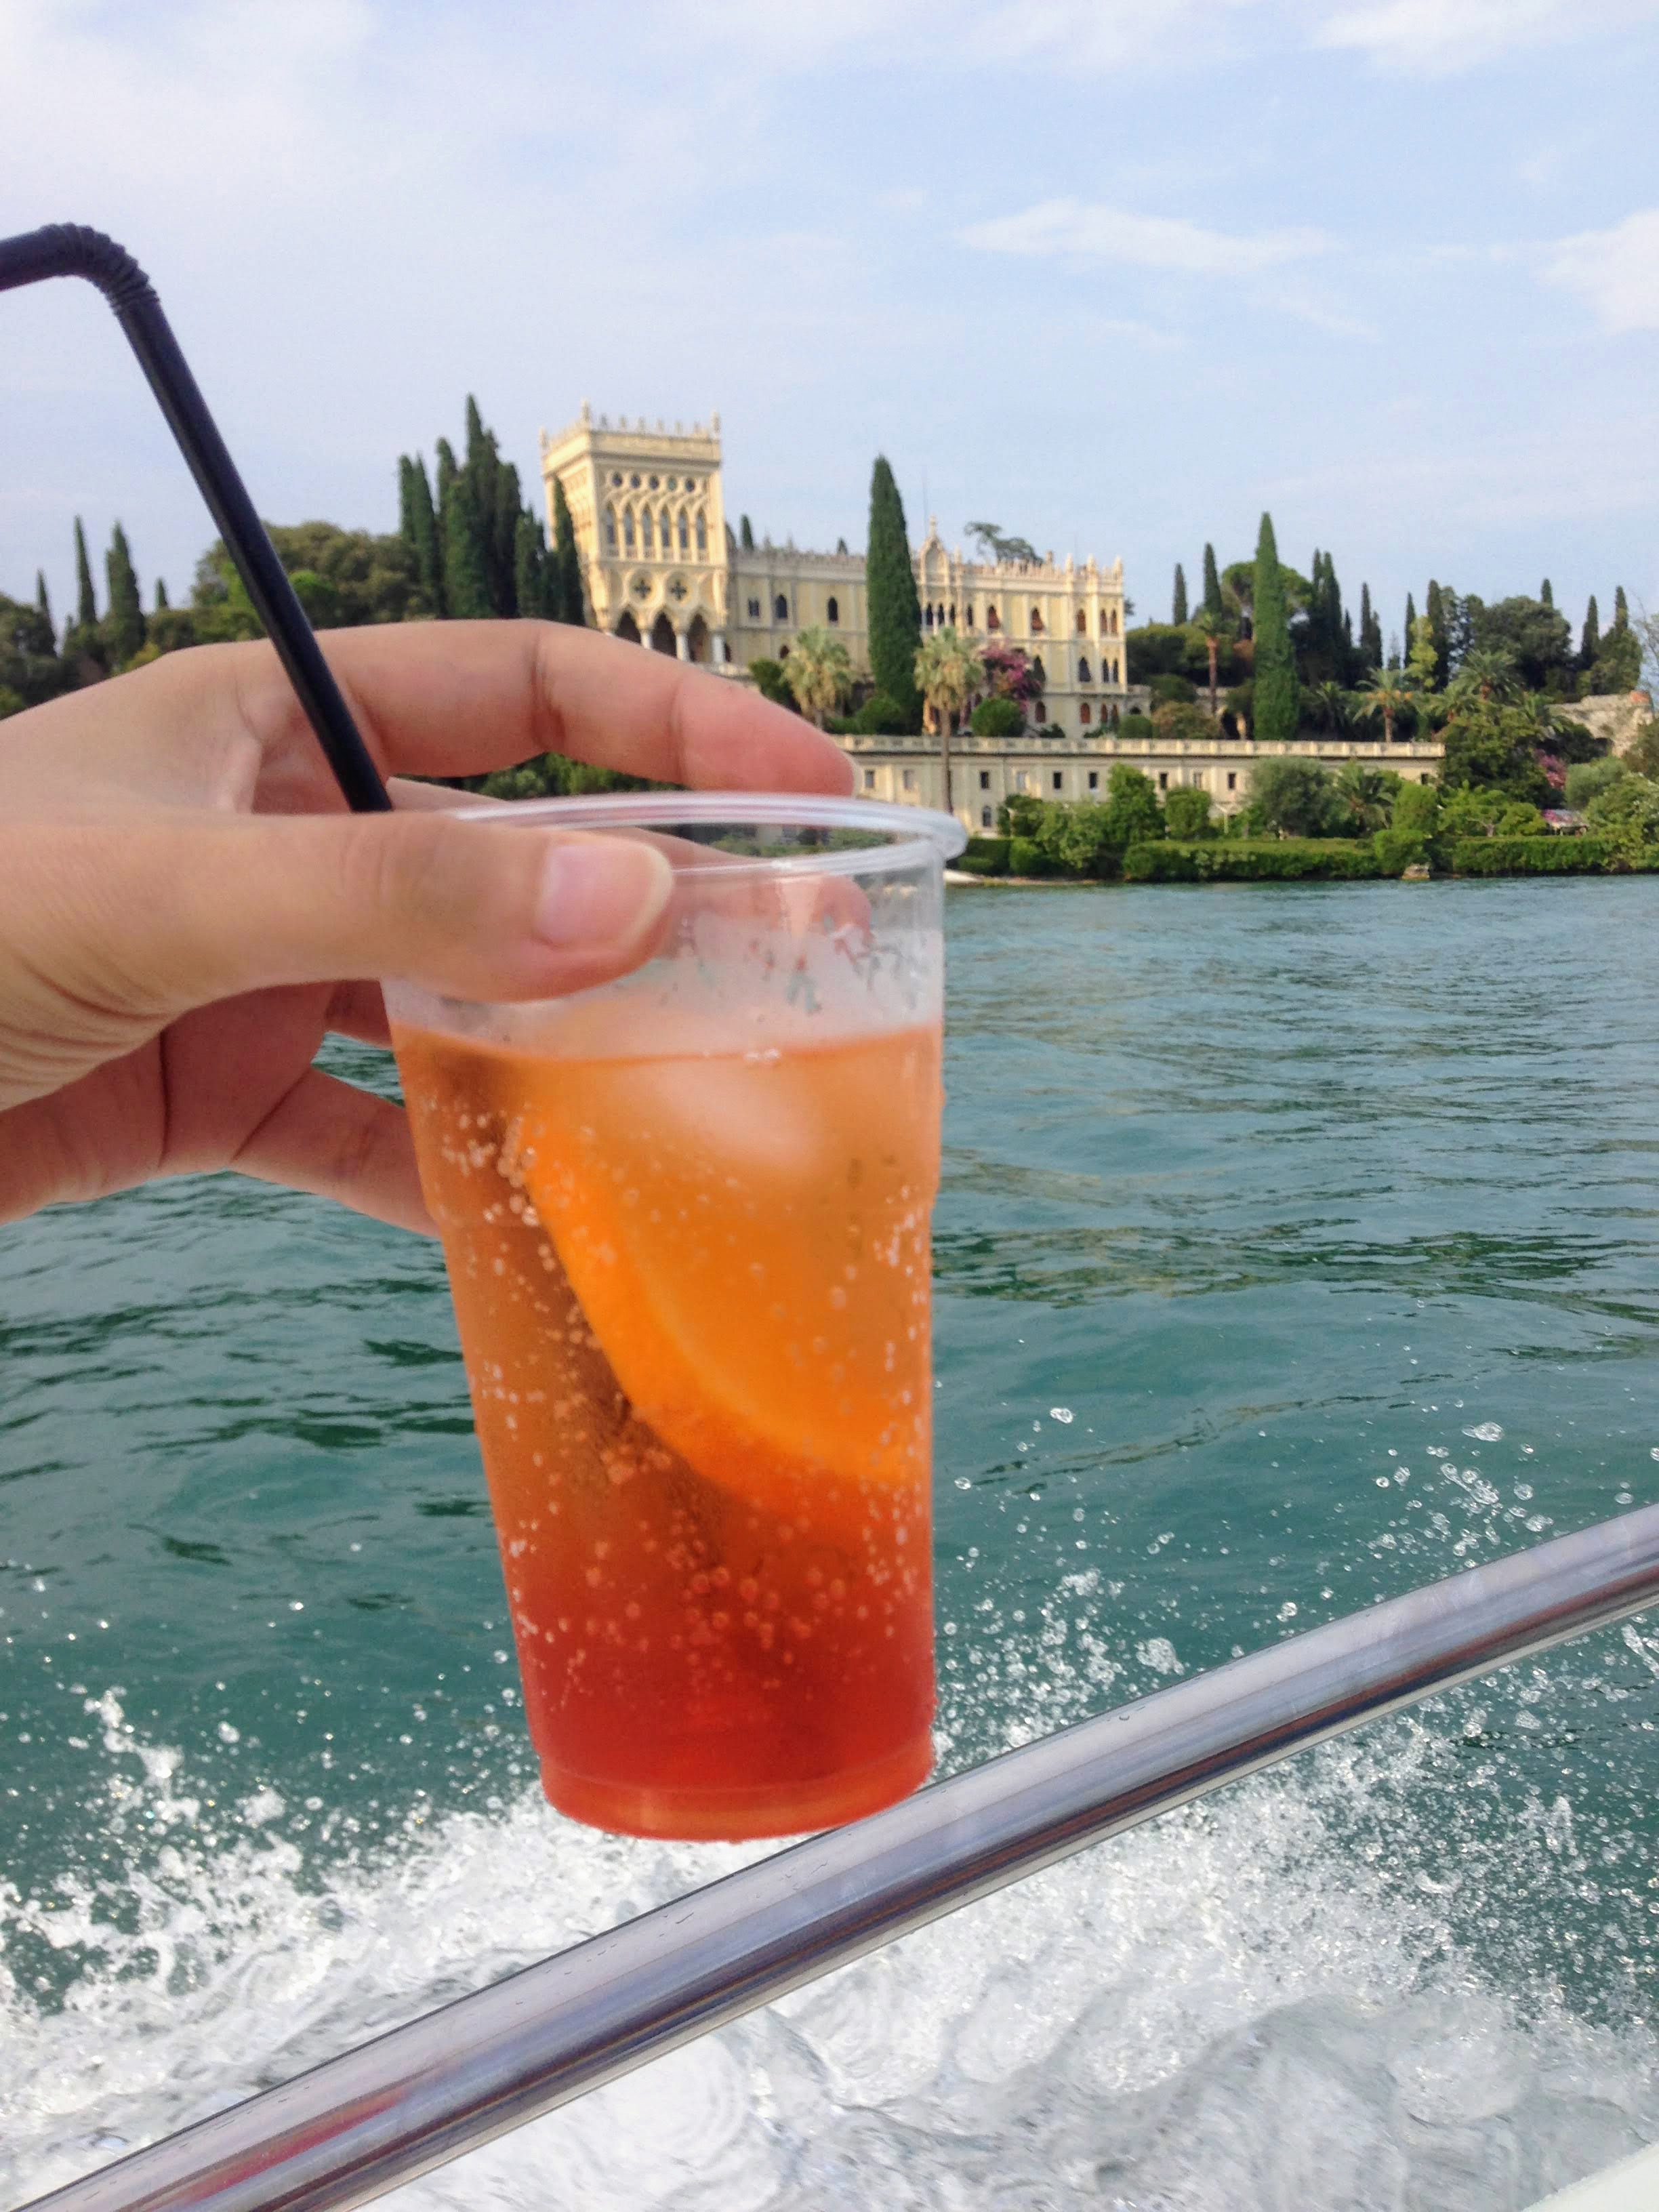 Italian cuisine food guide tavel guide food tips things to eat traditional dishes Veneto aperol spritz